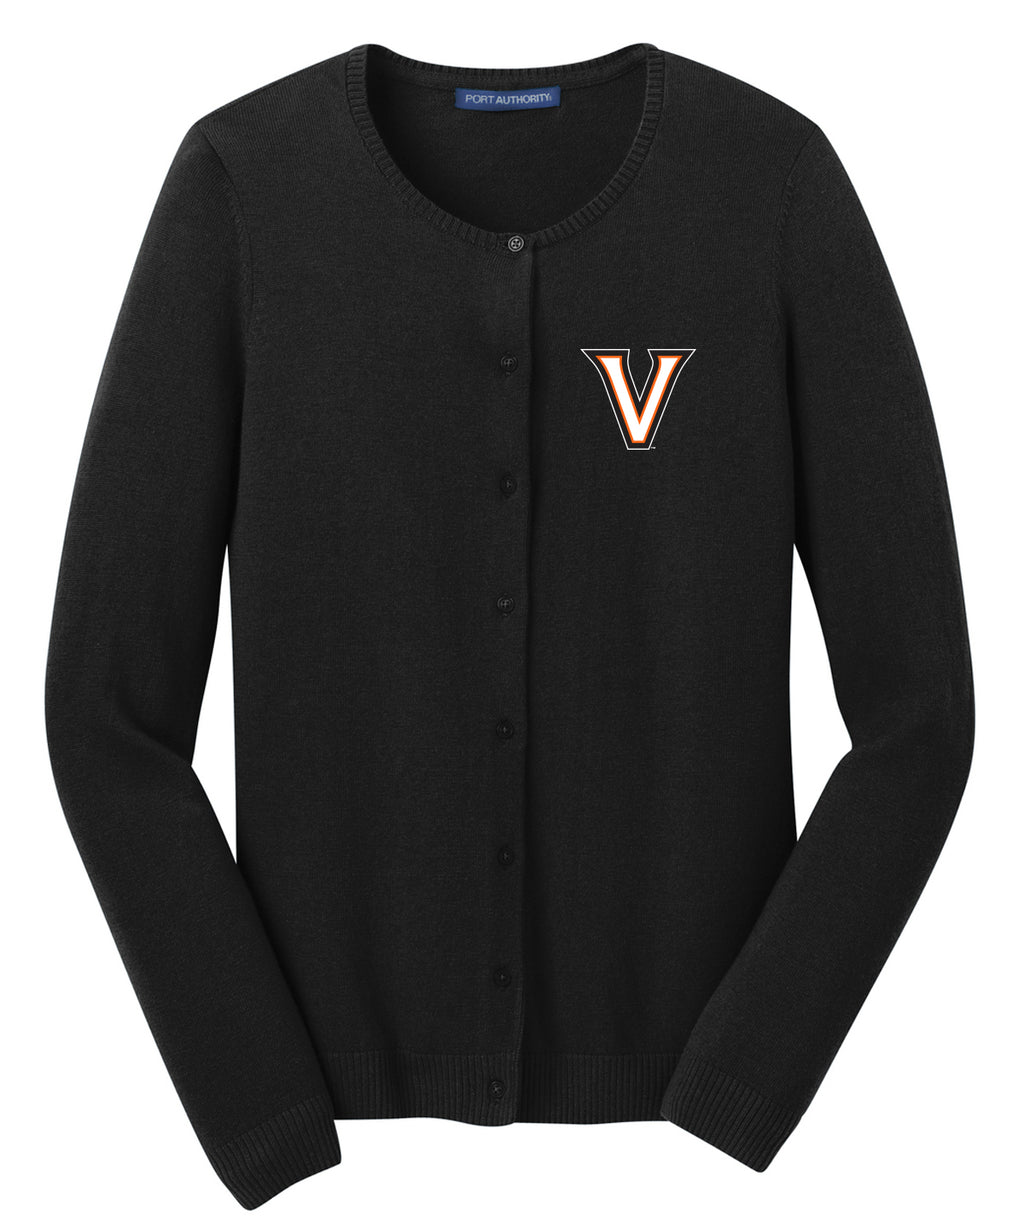 Valley V Womens Cardigan Sweater